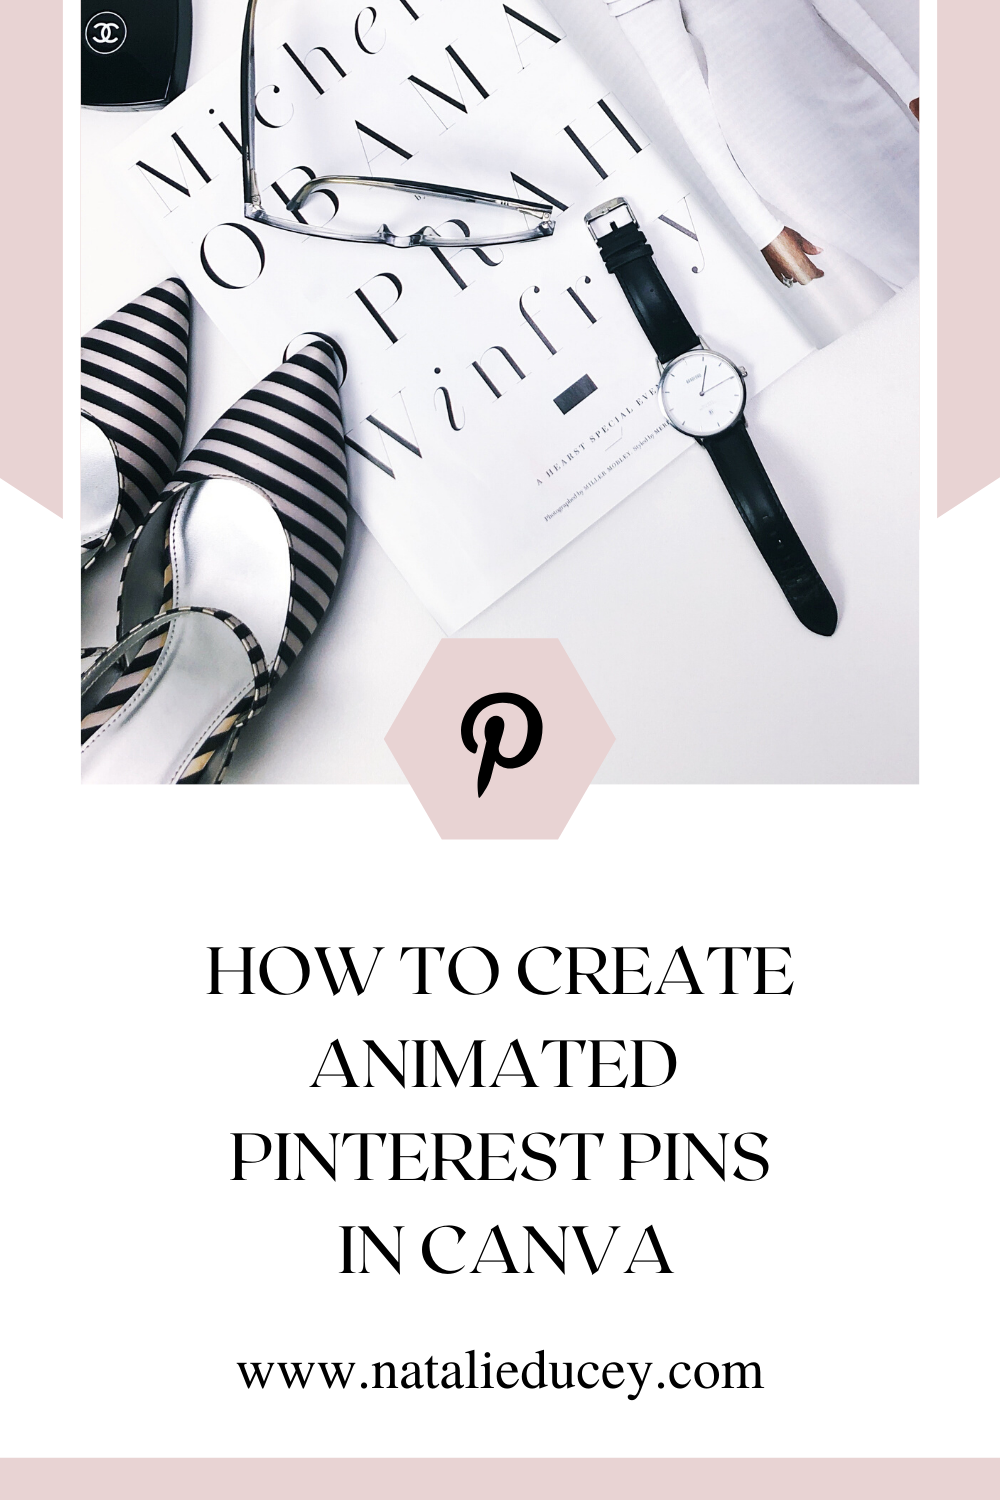 How to Create an Animated Pinterest Pin in Canva!